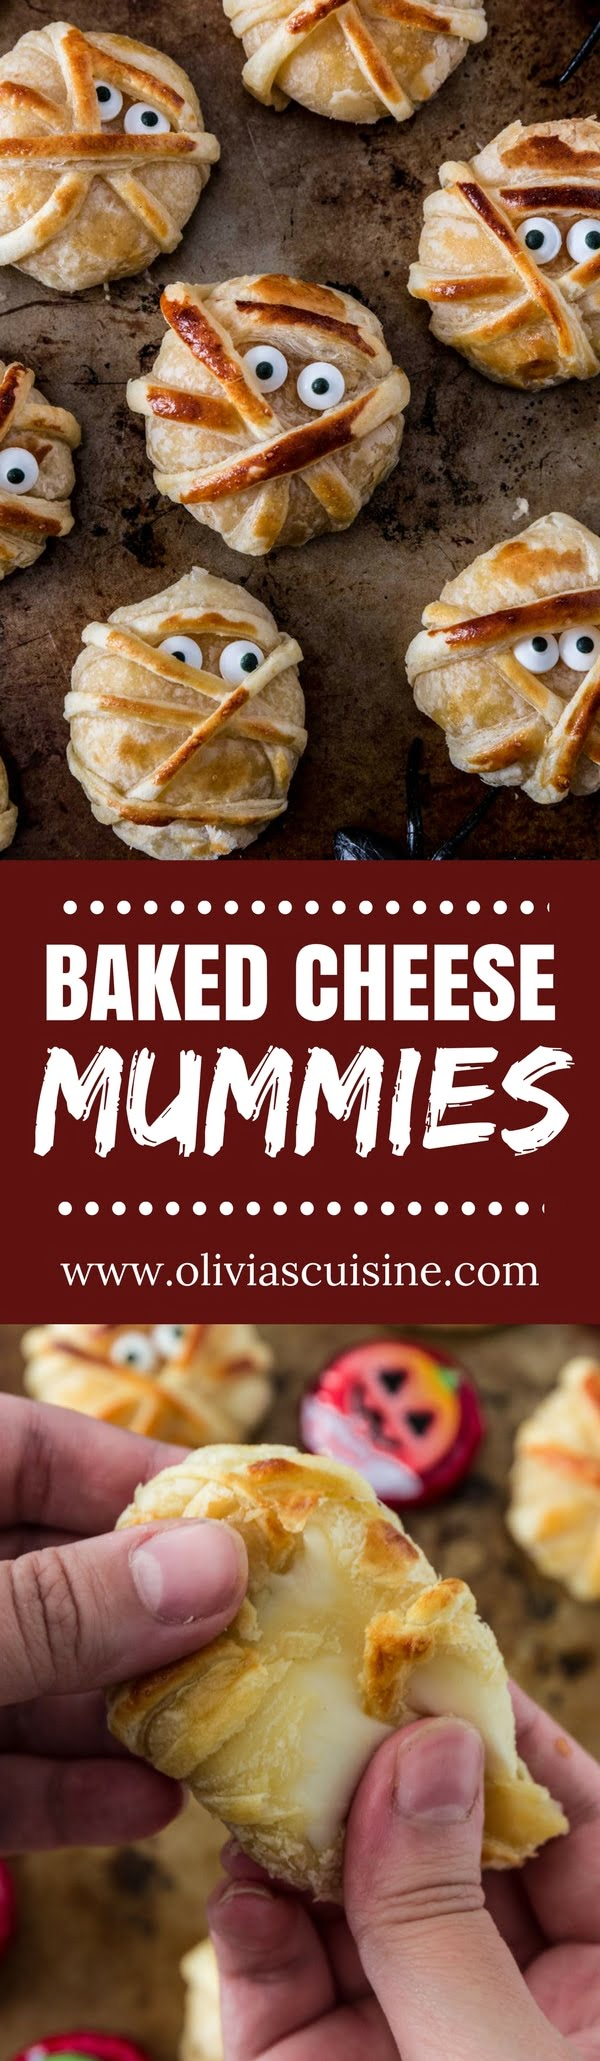 Baked Cheese Mummies | www.oliviascuisine.com | These fun puff pastry wrapped cheese mummies are not only cheesy-licious but very easy to make! They are sure to be the hit of your Halloween party! (Recipe and food photography by @oliviascuisine.)